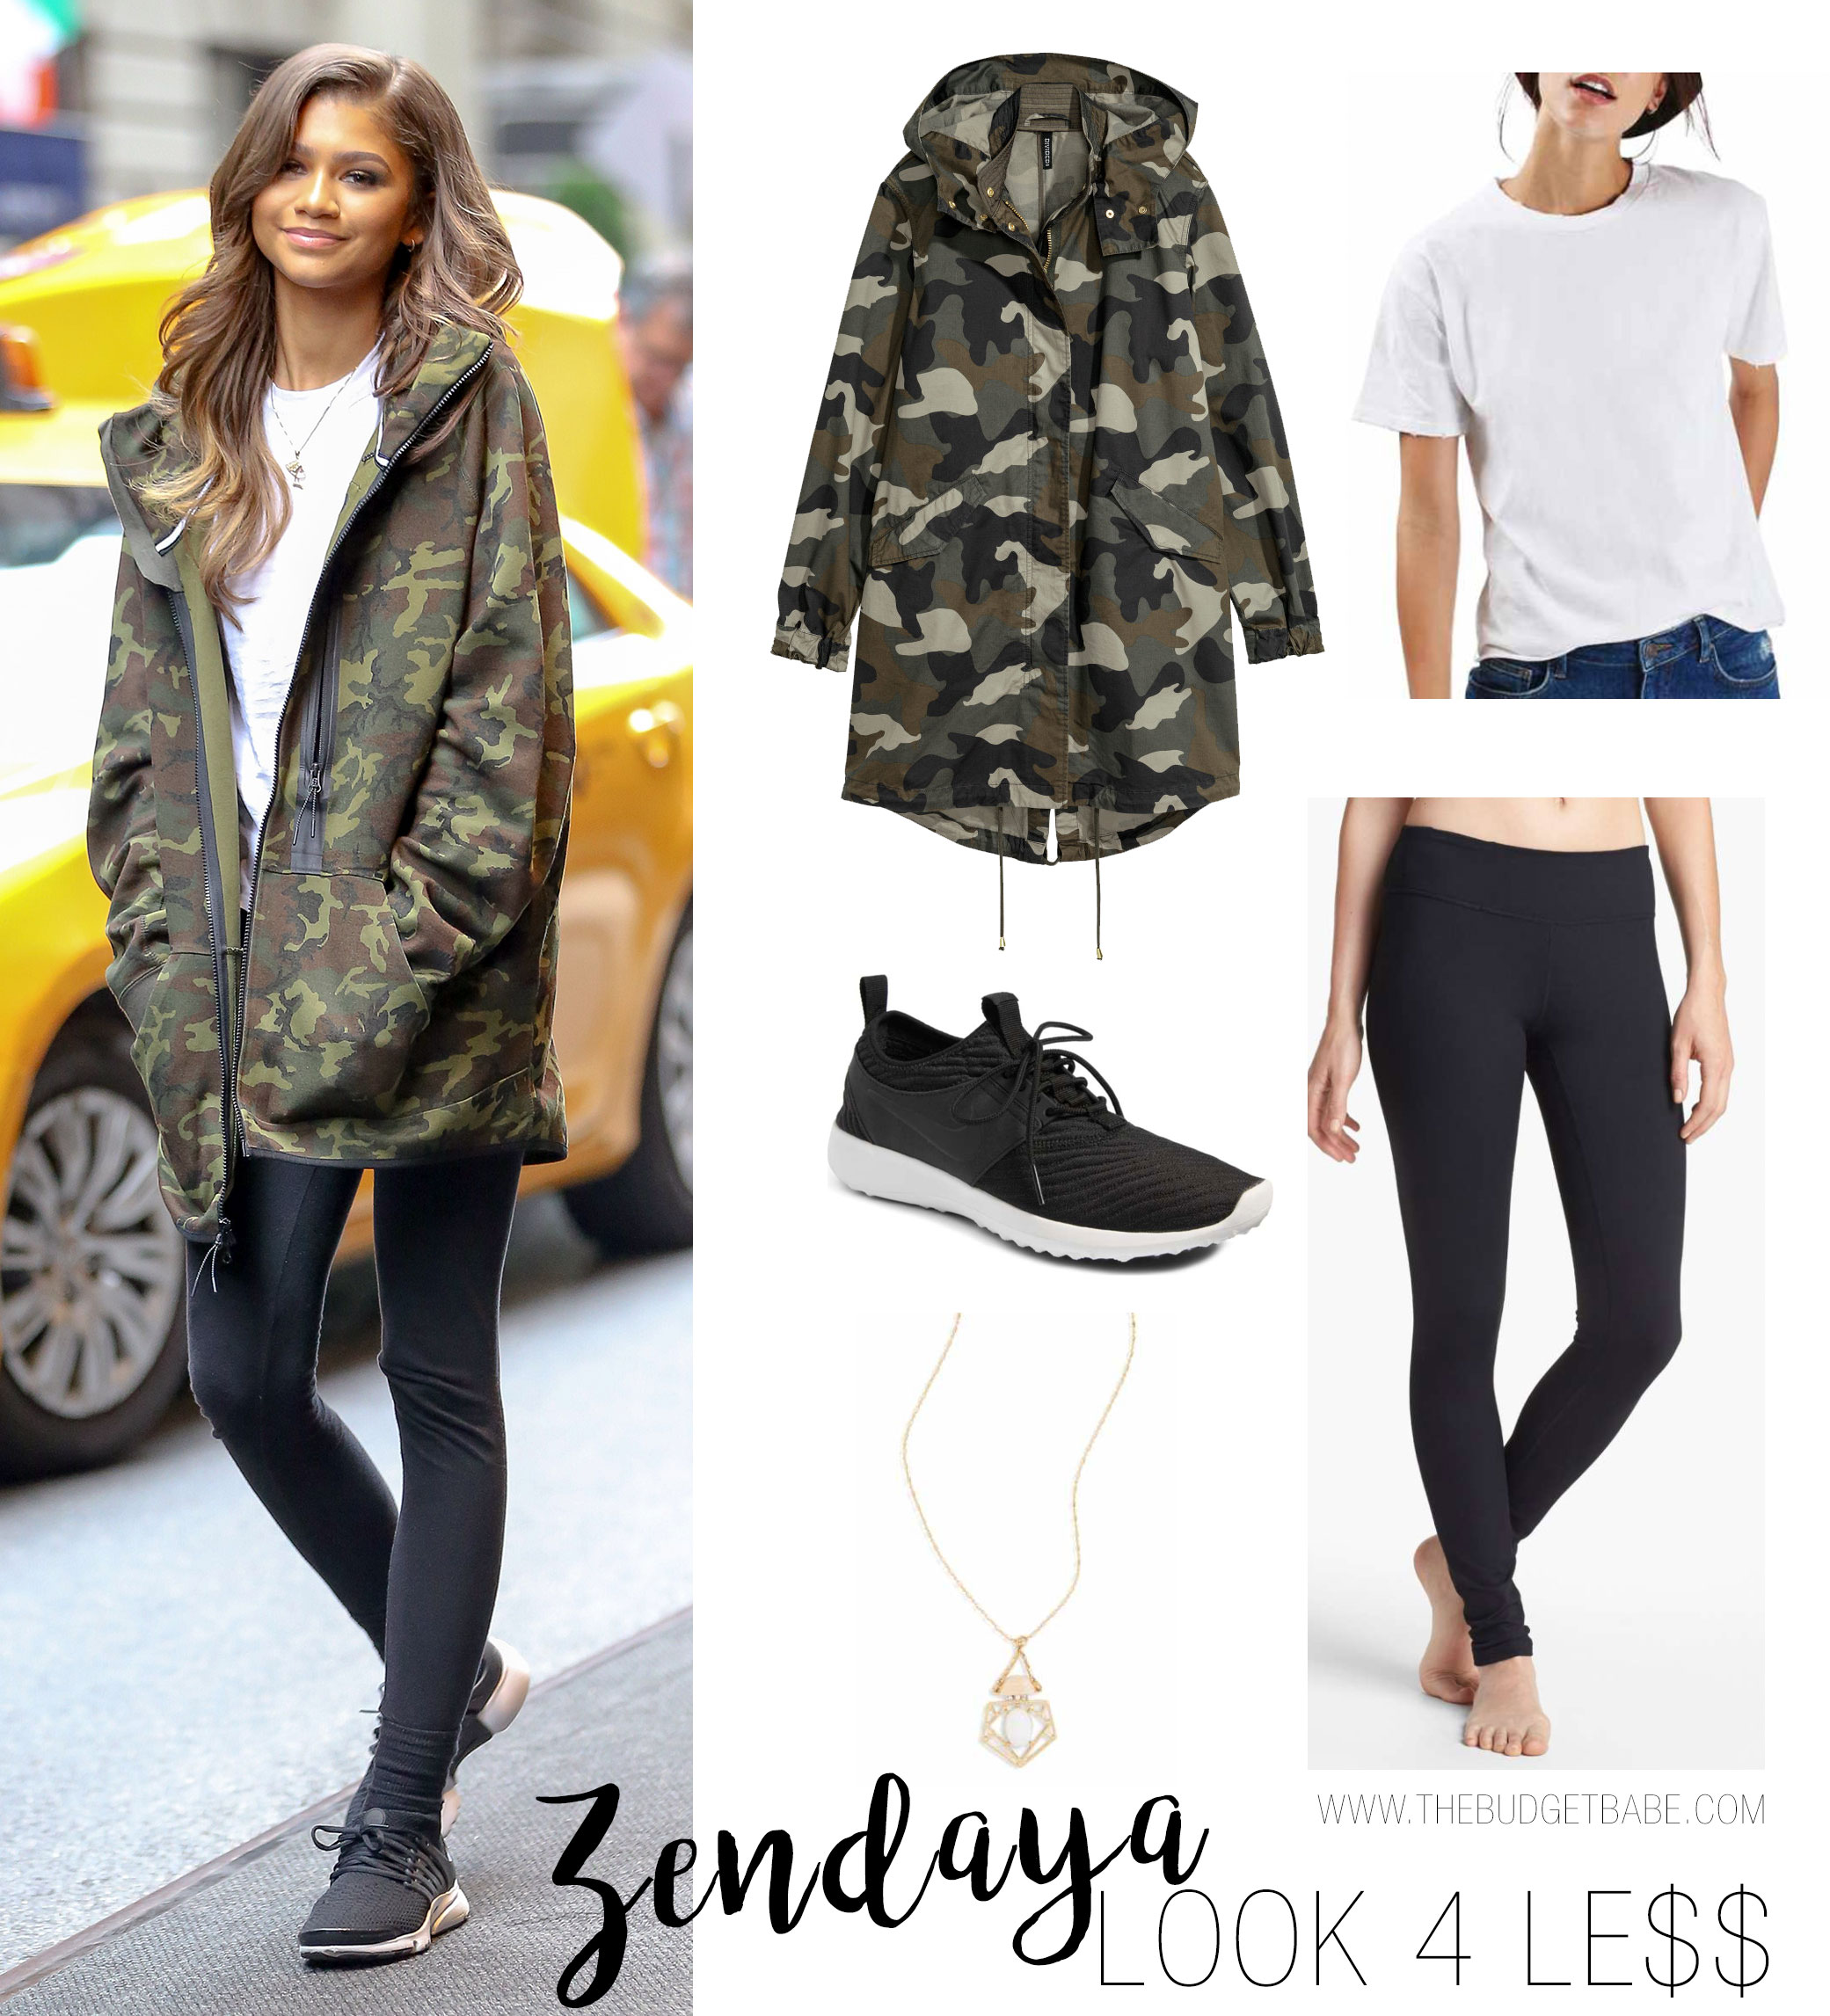 Zendaya styles her camo jacket with leggings, sneakers and soft curls.